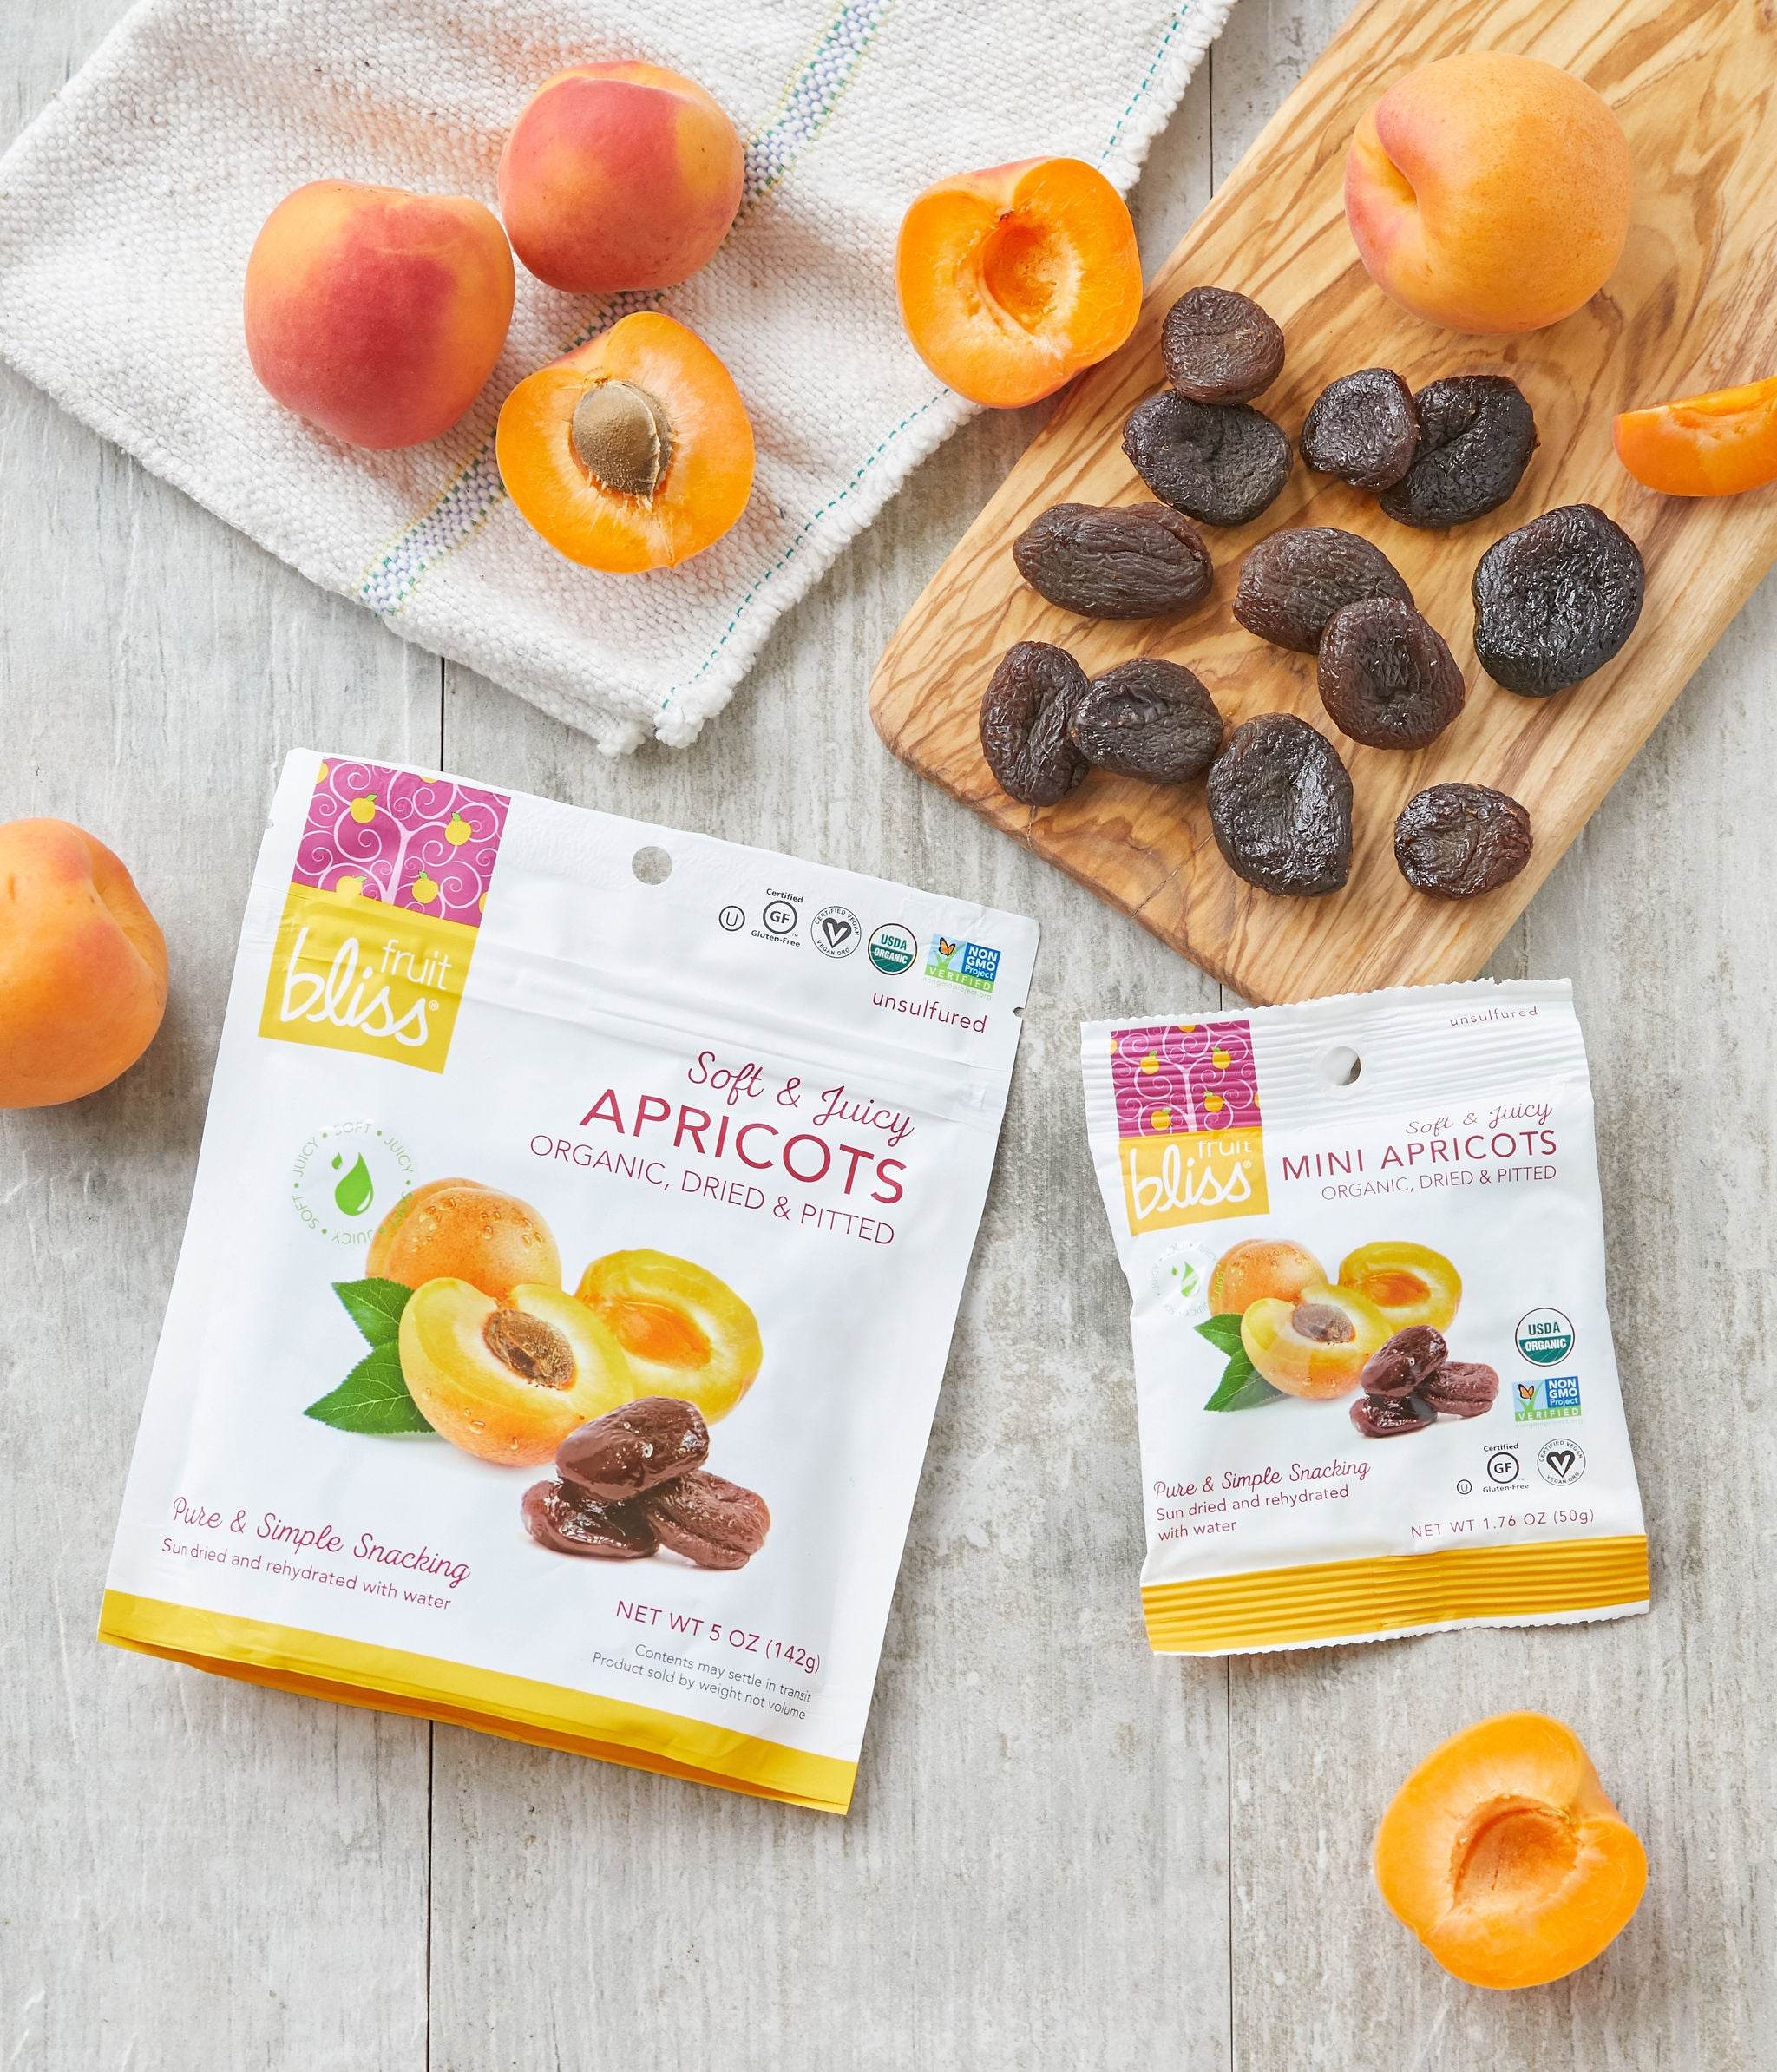 2-Pack Fruit Bliss Organic Turkish Apricot Snacks (5 oz. each)